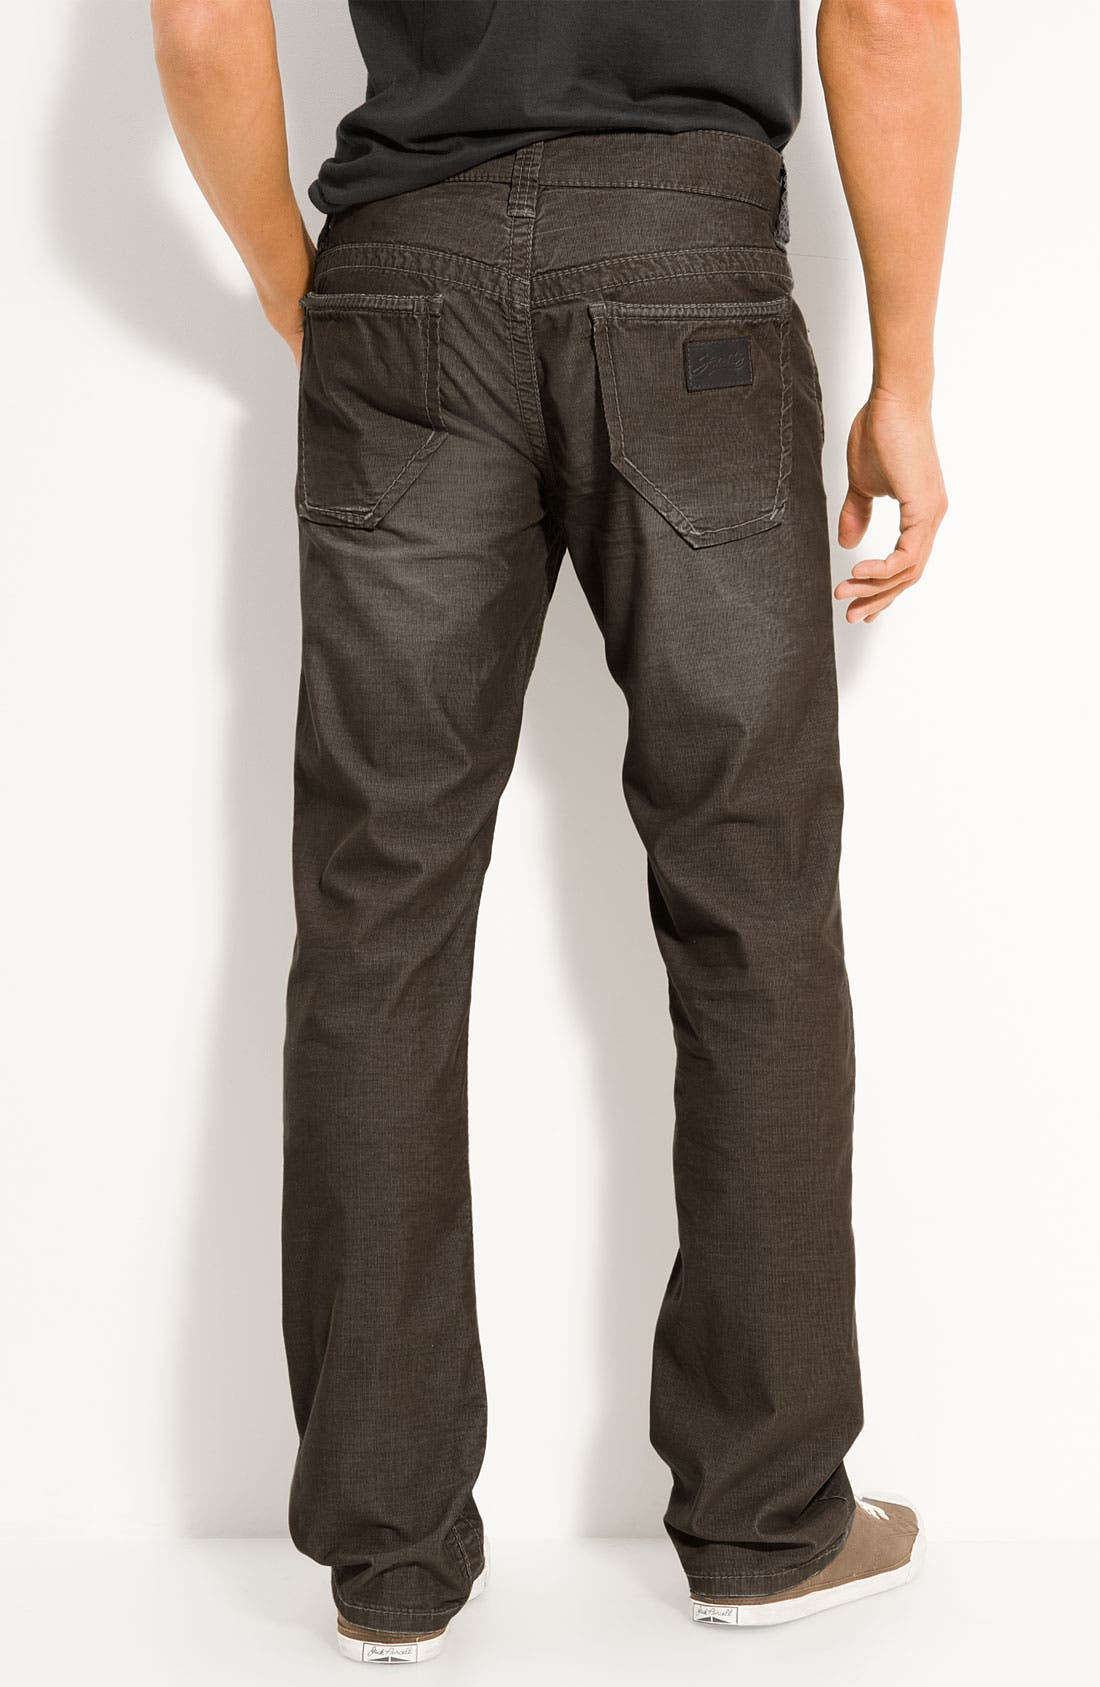 Alternate Image 1 Selected - Stitch's Jeans 'Texas' Straight Leg Corduroy Pants